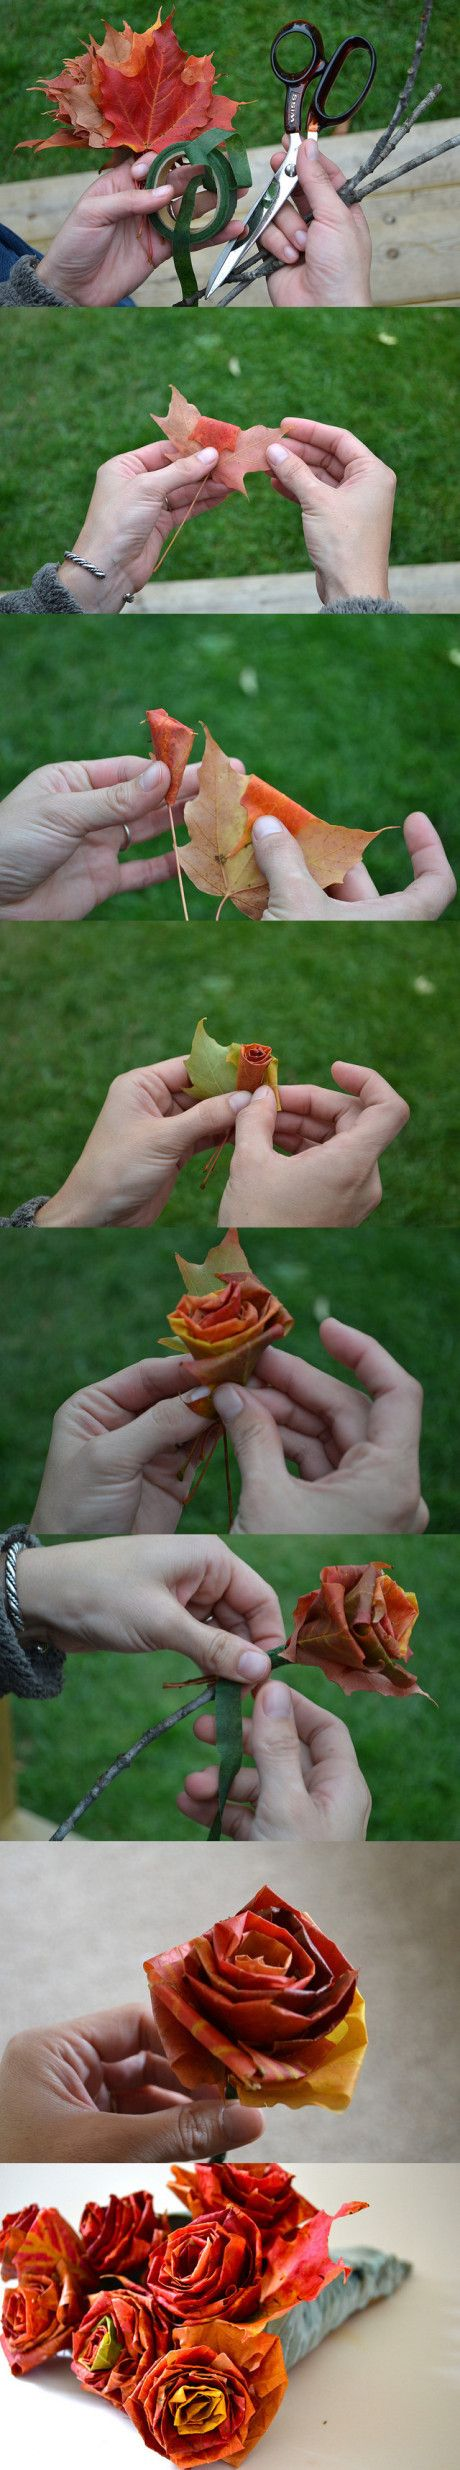 Turn a maple lead into a rose!